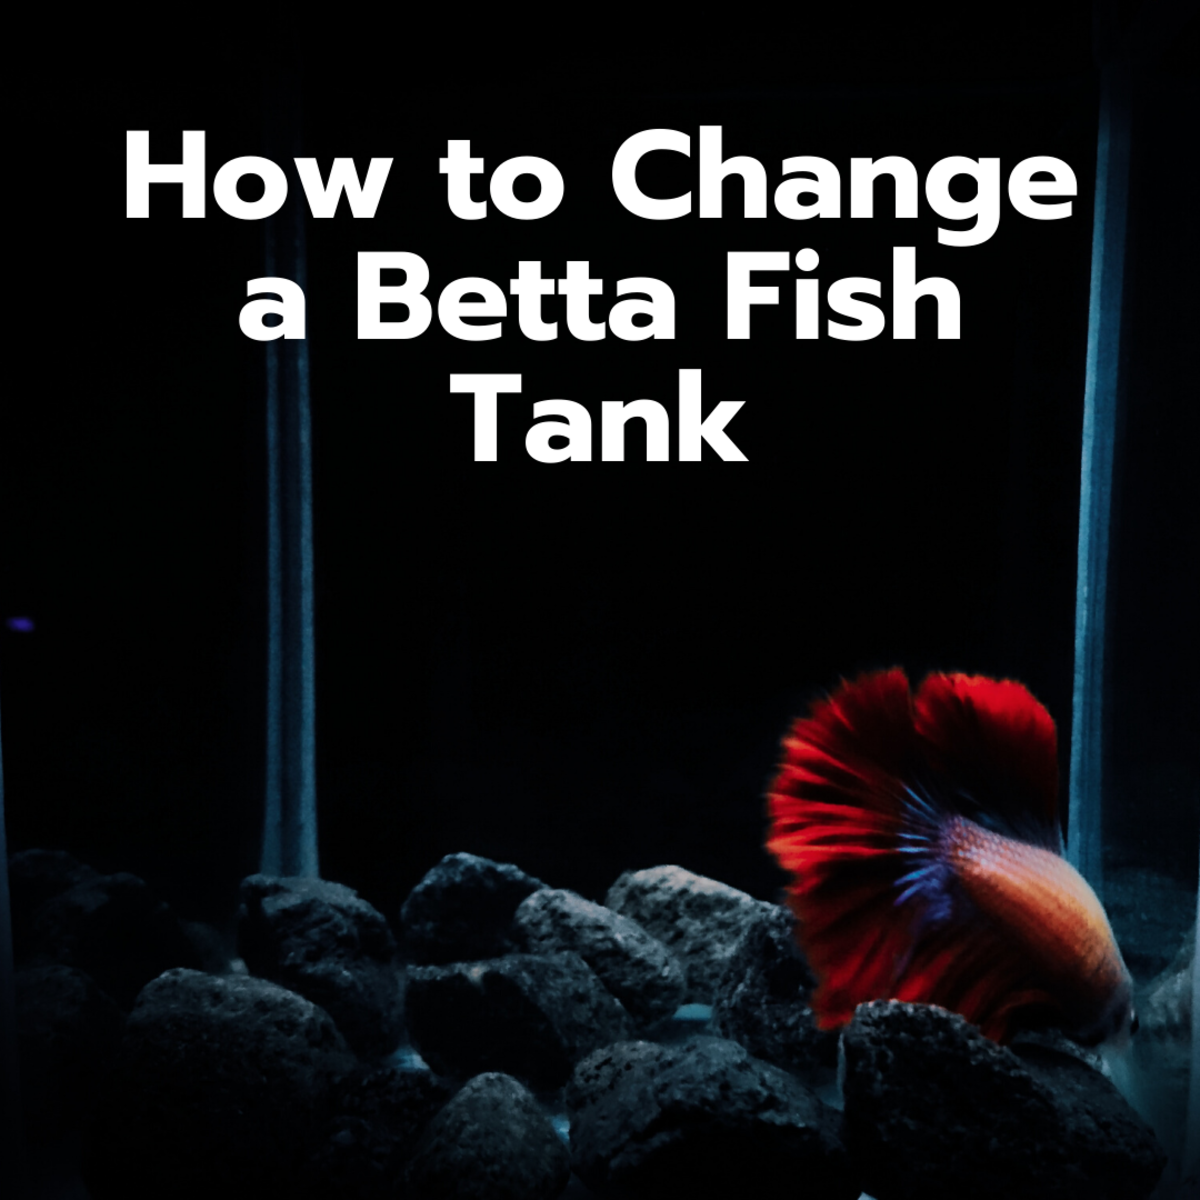 How to Change the Water in a Betta Fish Tank